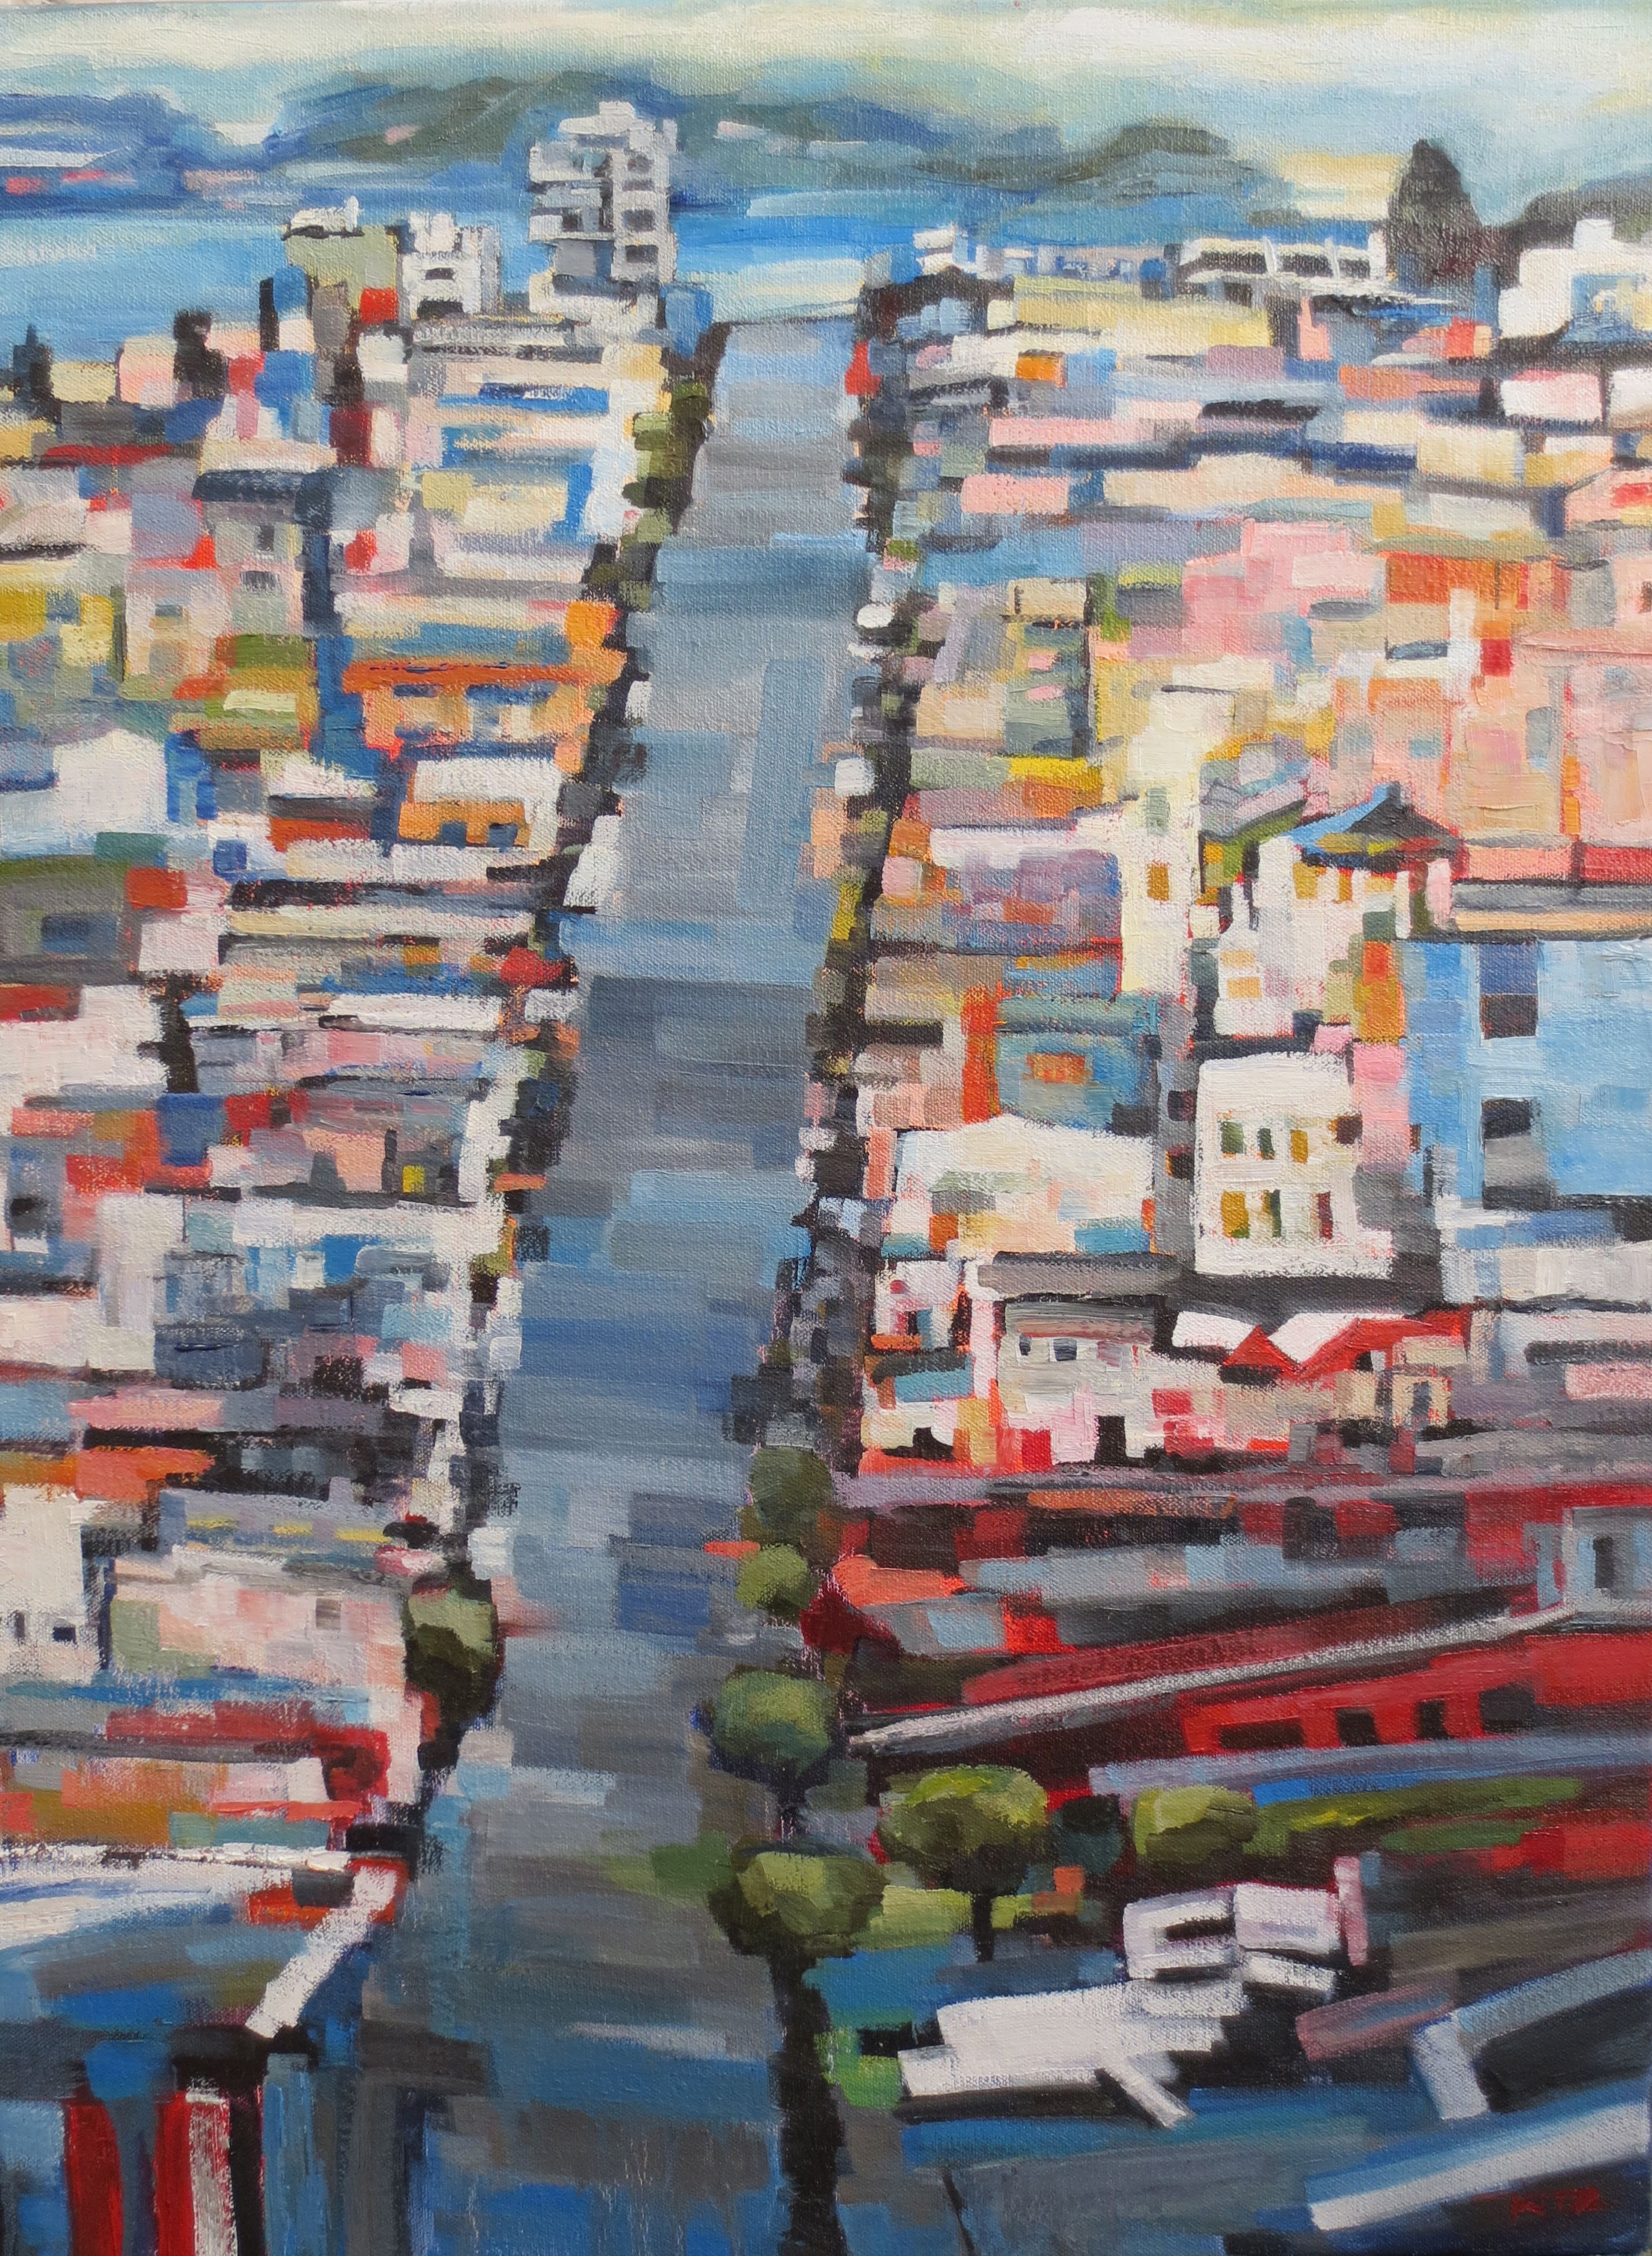 Pin By Rach Seb On Abstract Aerial And Landscape Paintings City Painting Abstract Landscape Painting Abstract Landscape